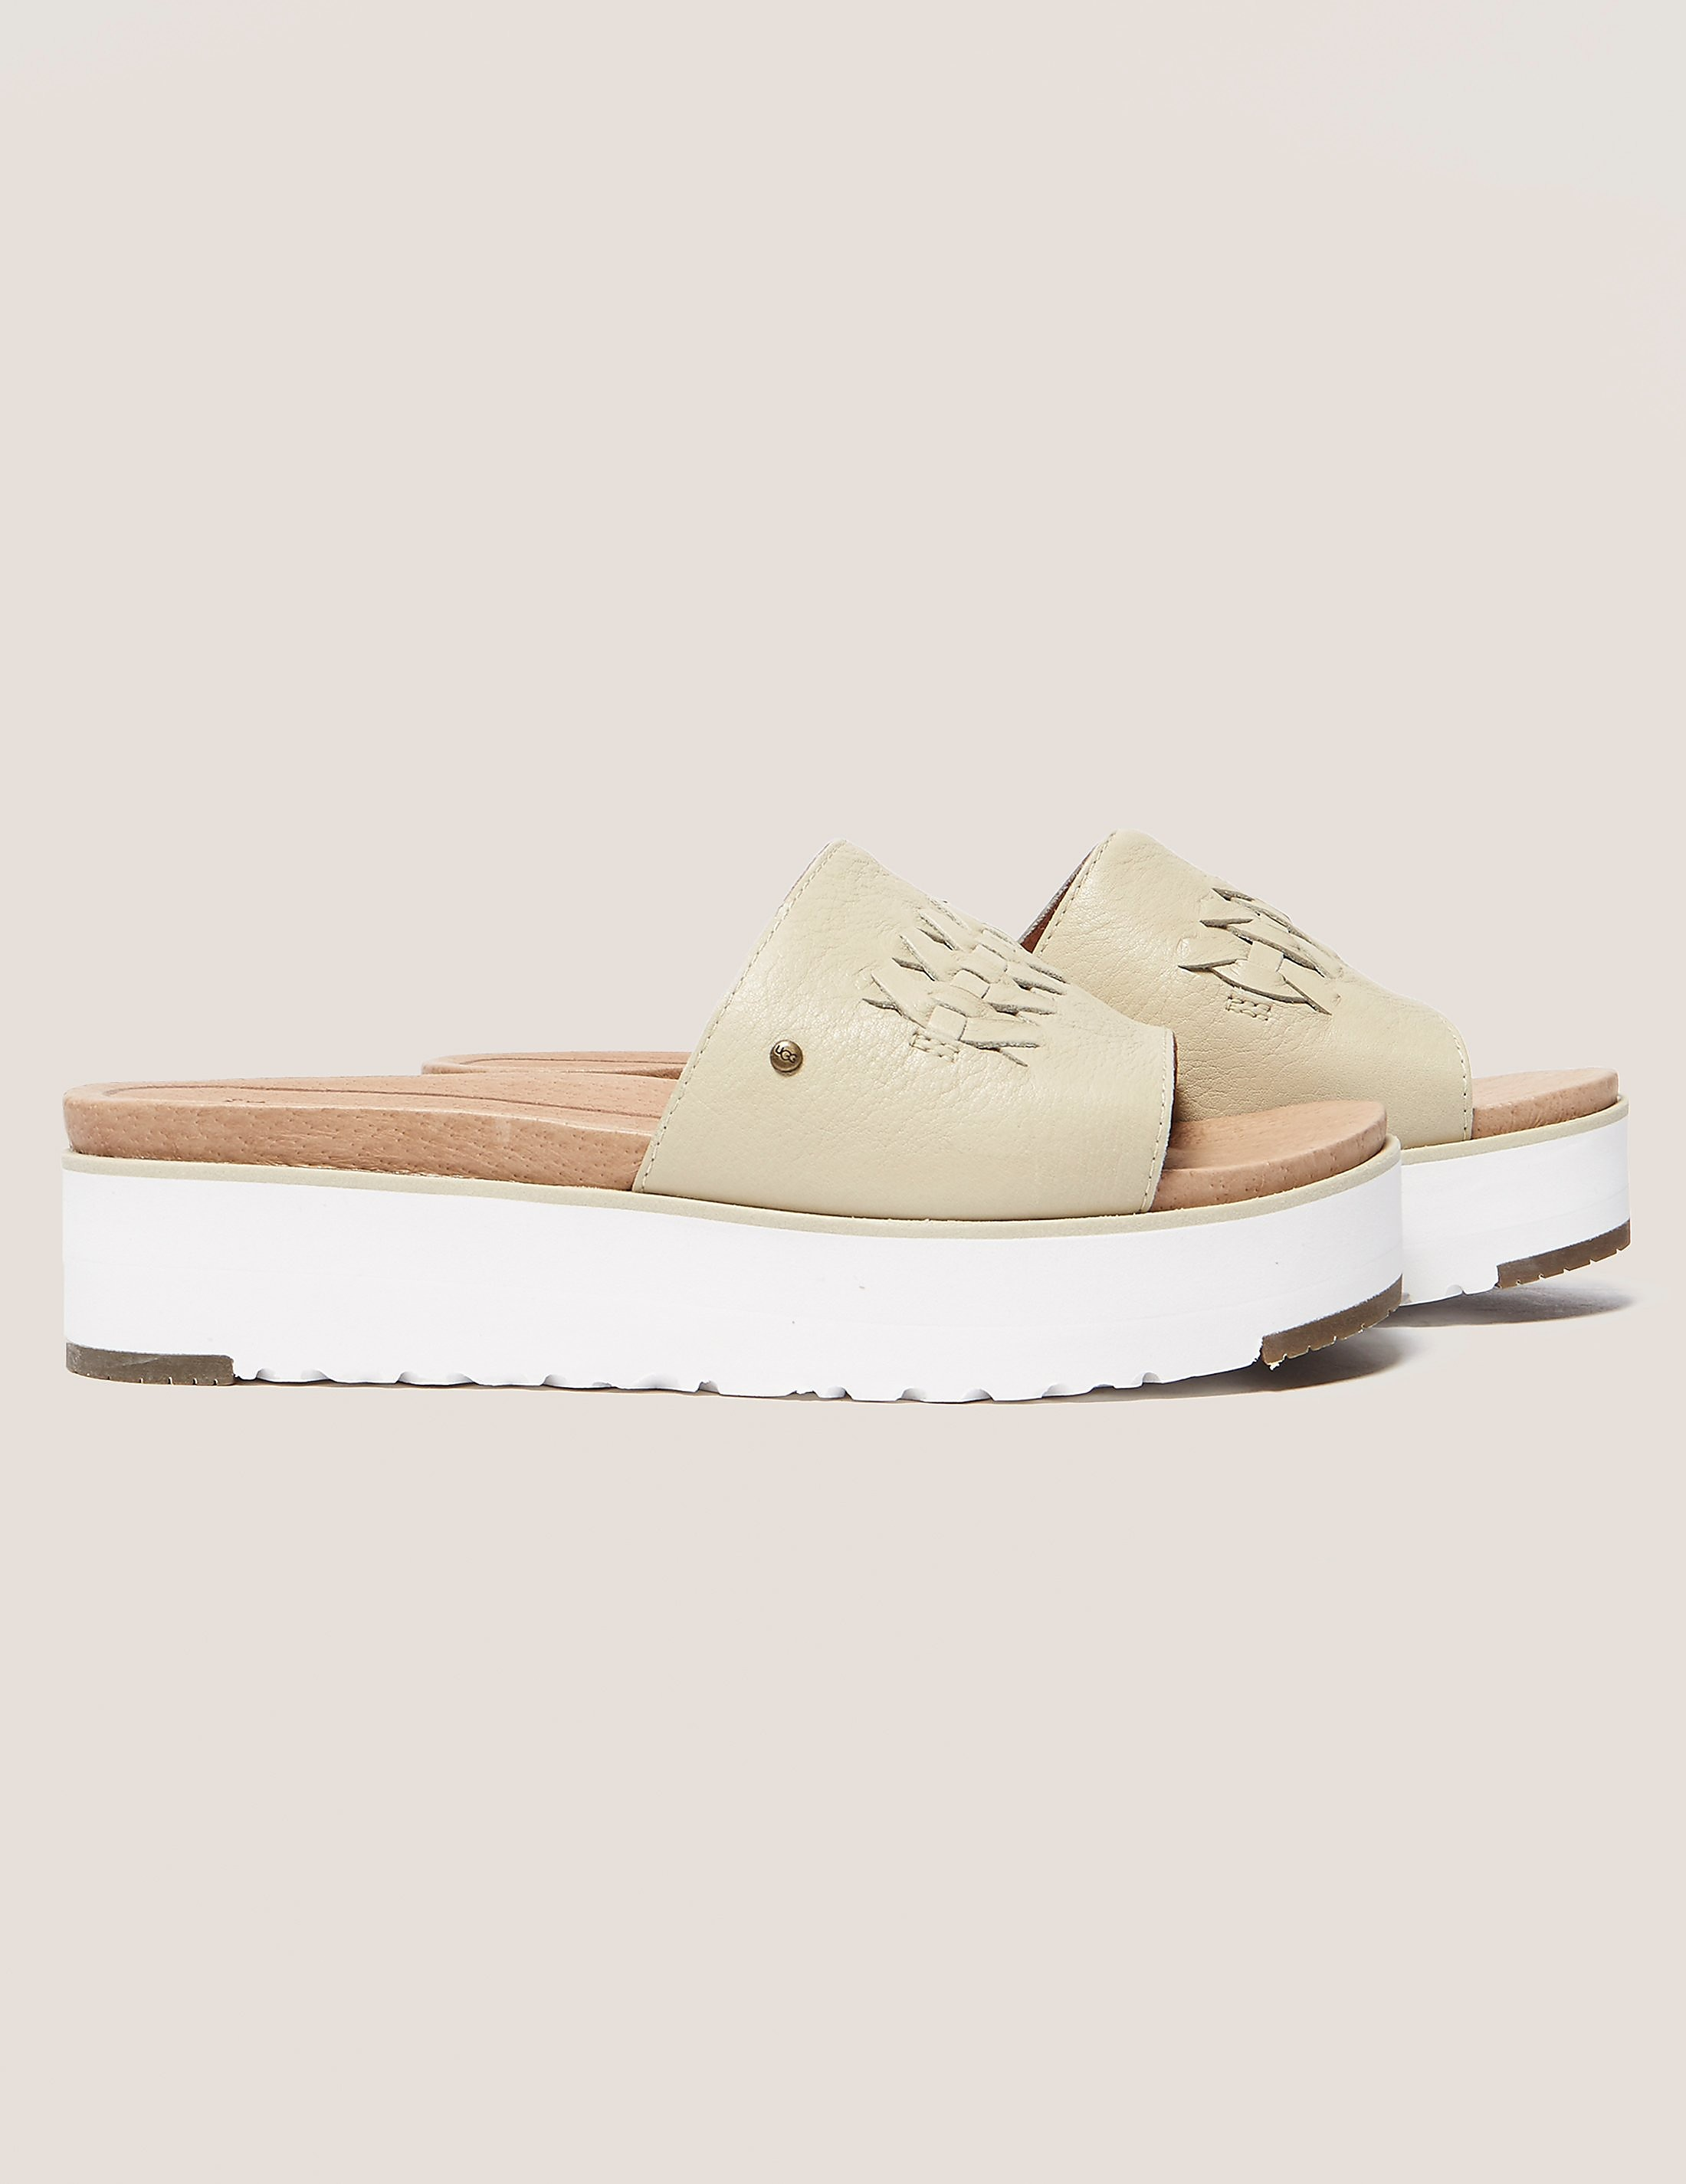 UGG Delaney Slide Sandal